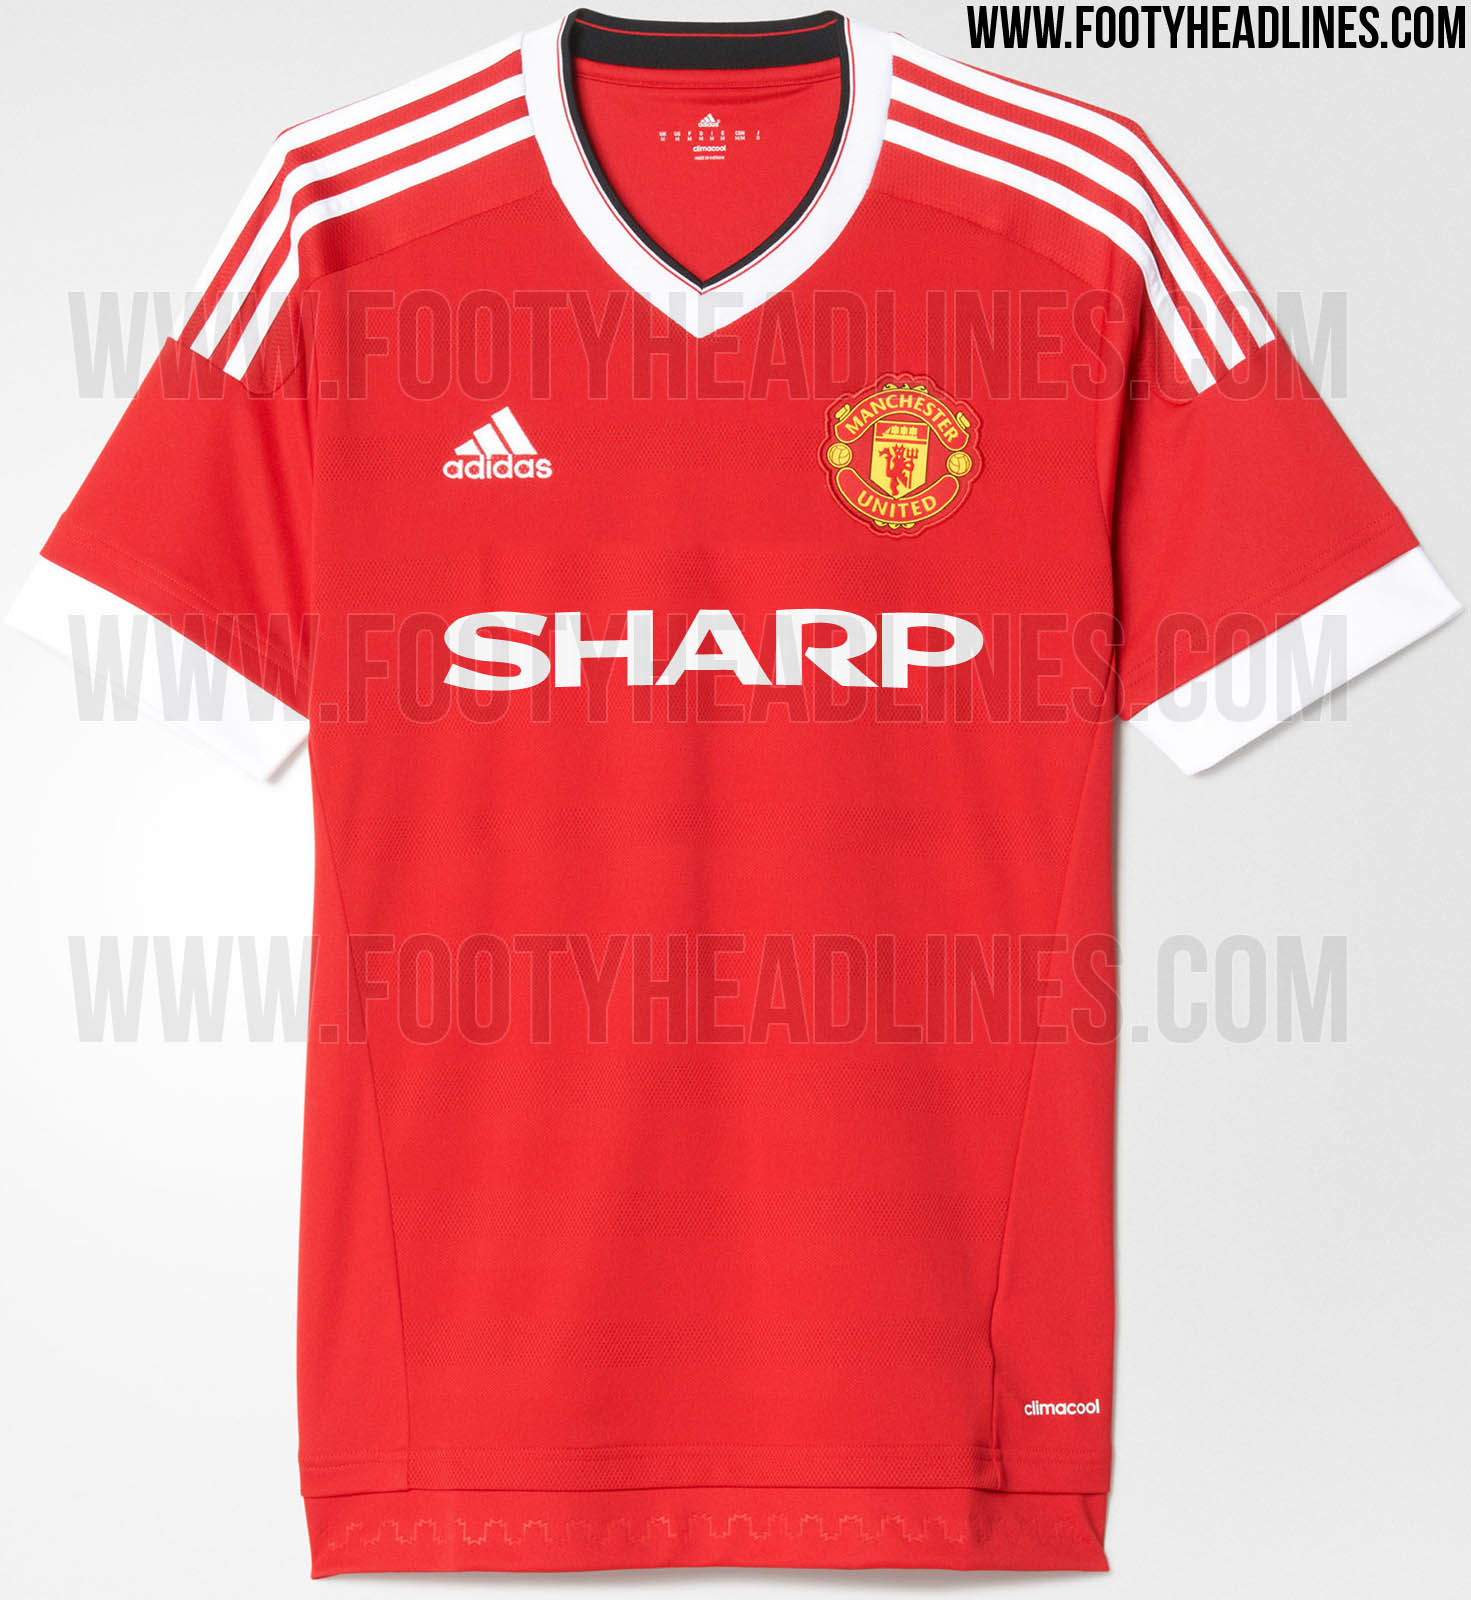 the manchester united buccaneers